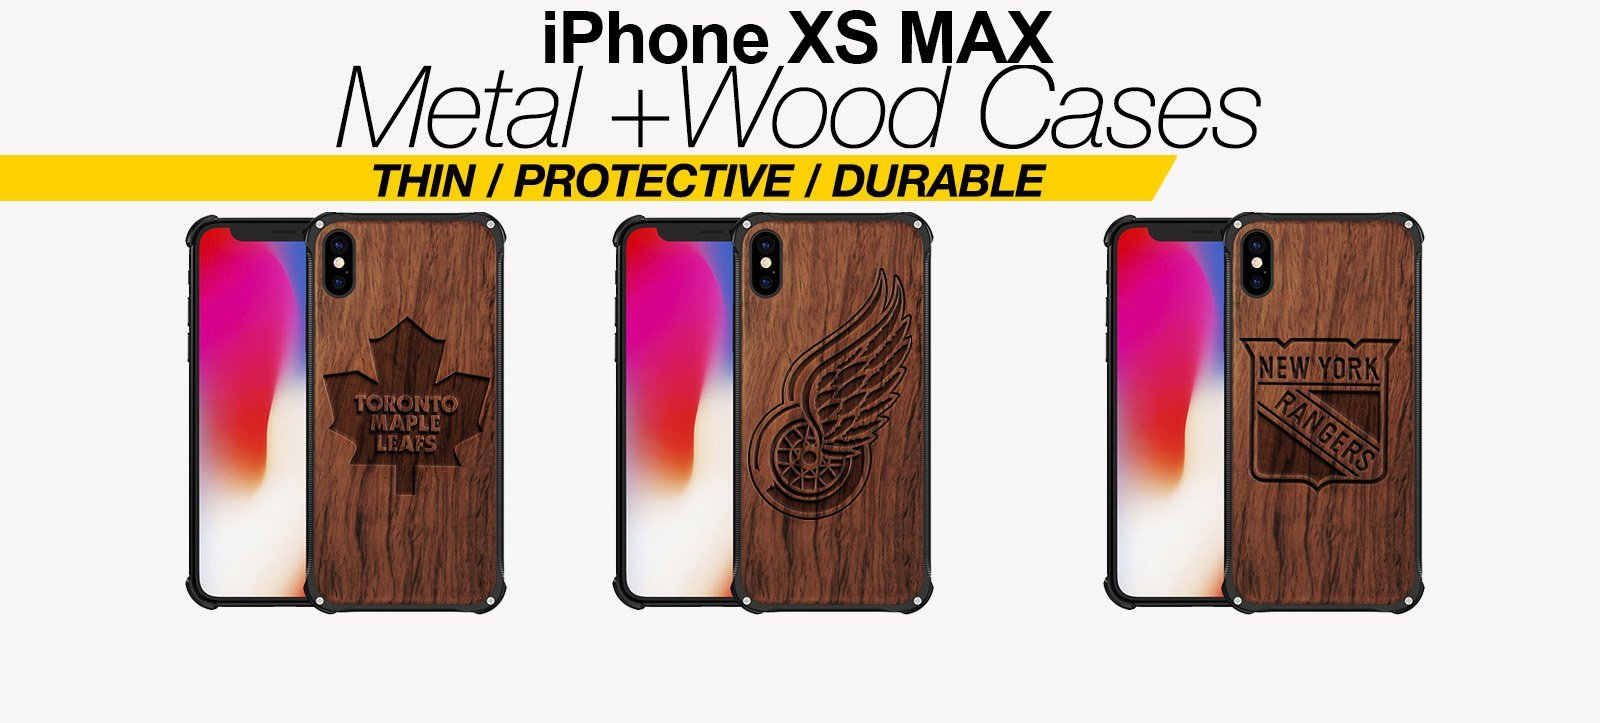 Wood And Metal iPhone XS Max Cases Best Wood And Metal iPhone XS Max Covers Thin Protective Eco Friendly